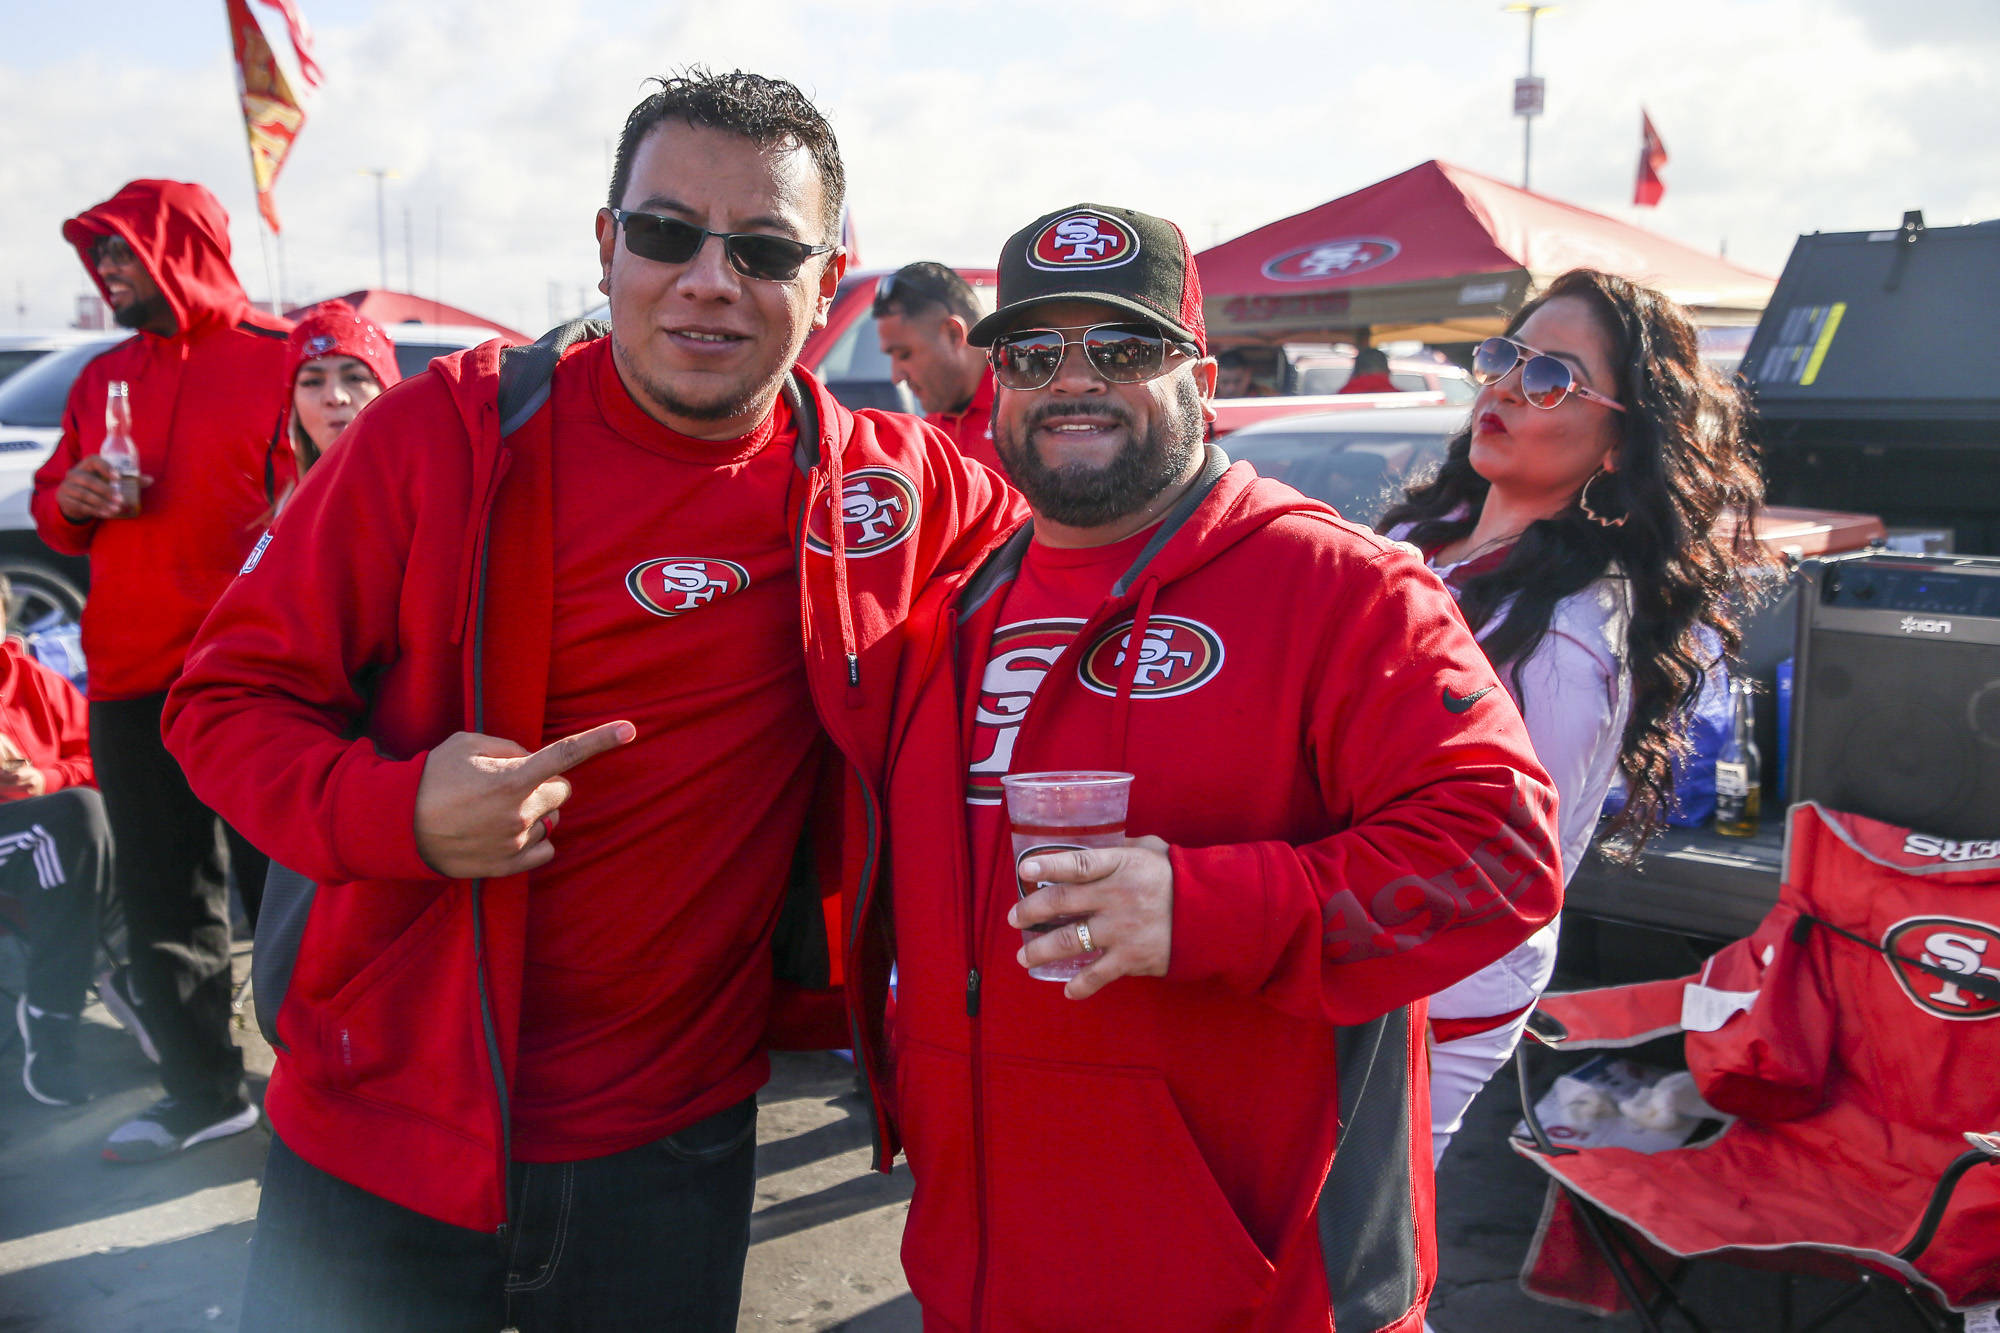 Fans arrive early to Levi's Stadium and tailgate before the Minnesota Vikings play against the San Francisco 49ers in the NFC Divisional Playoff Game on January 11, 2020 in Santa Clara, California. (Chris Victorio   Special to the S.F. Examiner)